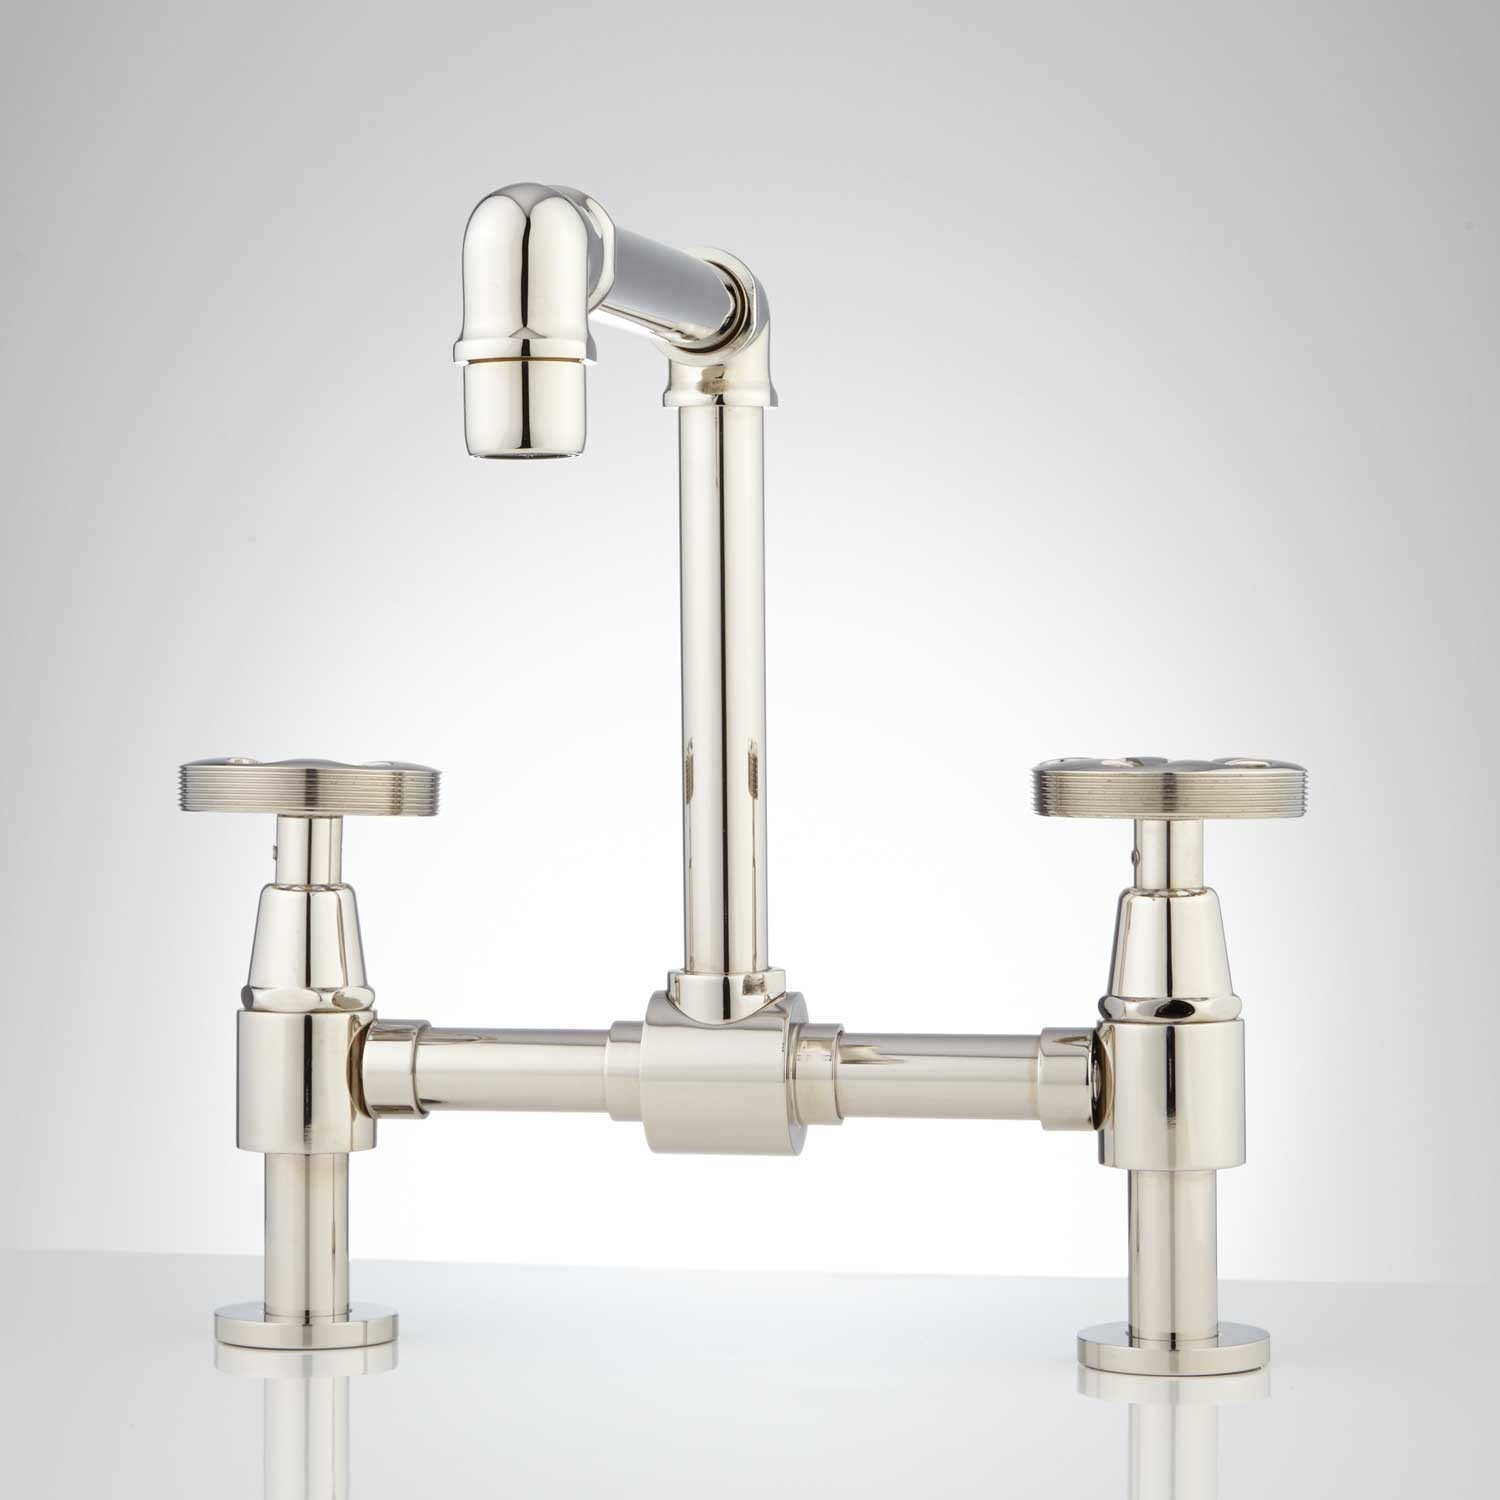 Ideas, rohl bridge faucet with side spray rohl bridge faucet with side spray kitchen bridge faucet for kitchen design to ease of maintenance 1500 x 1500  .